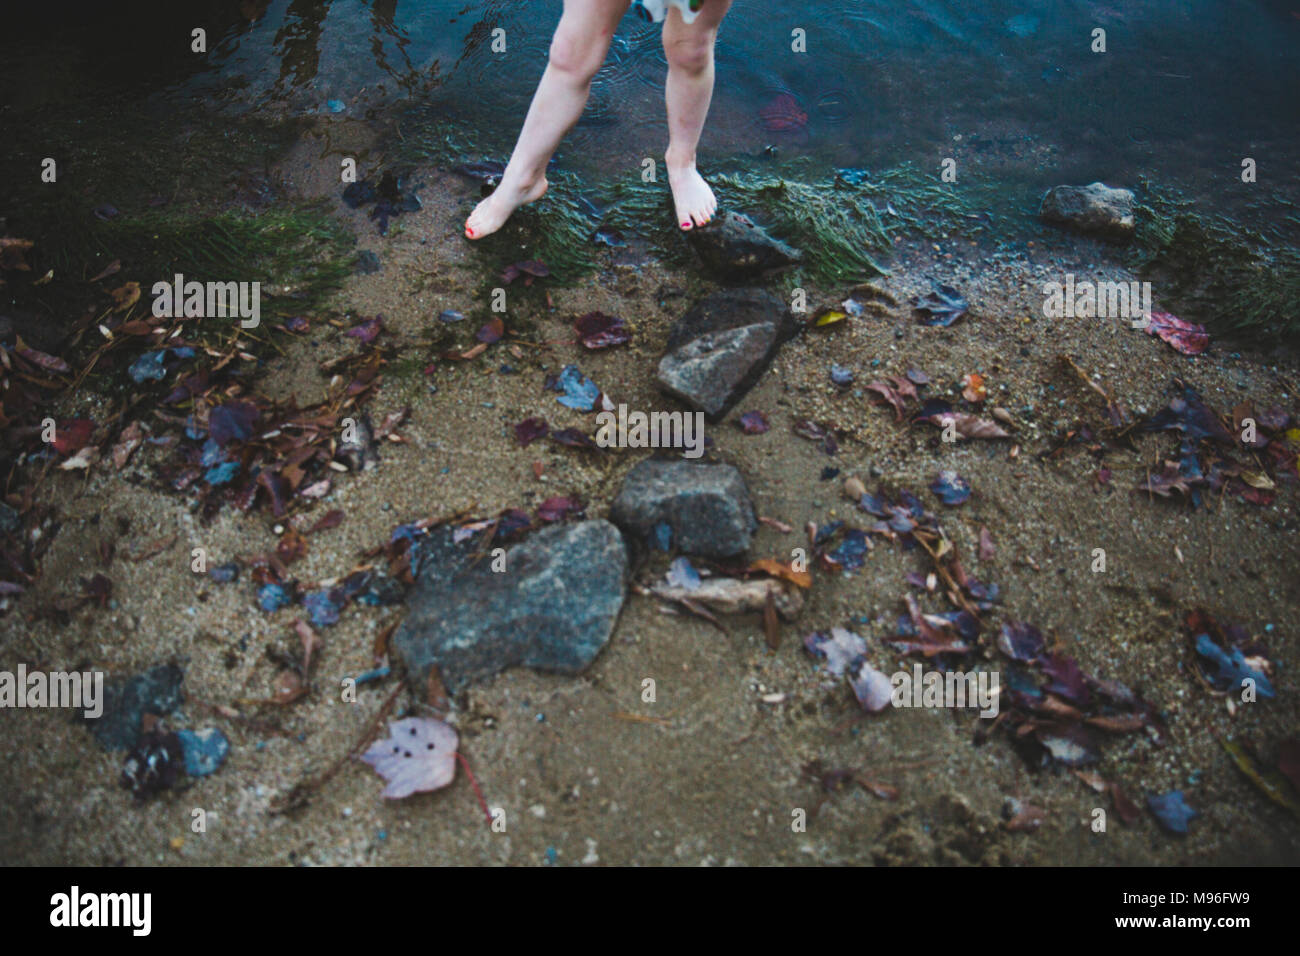 Child on rocky sand - Stock Image